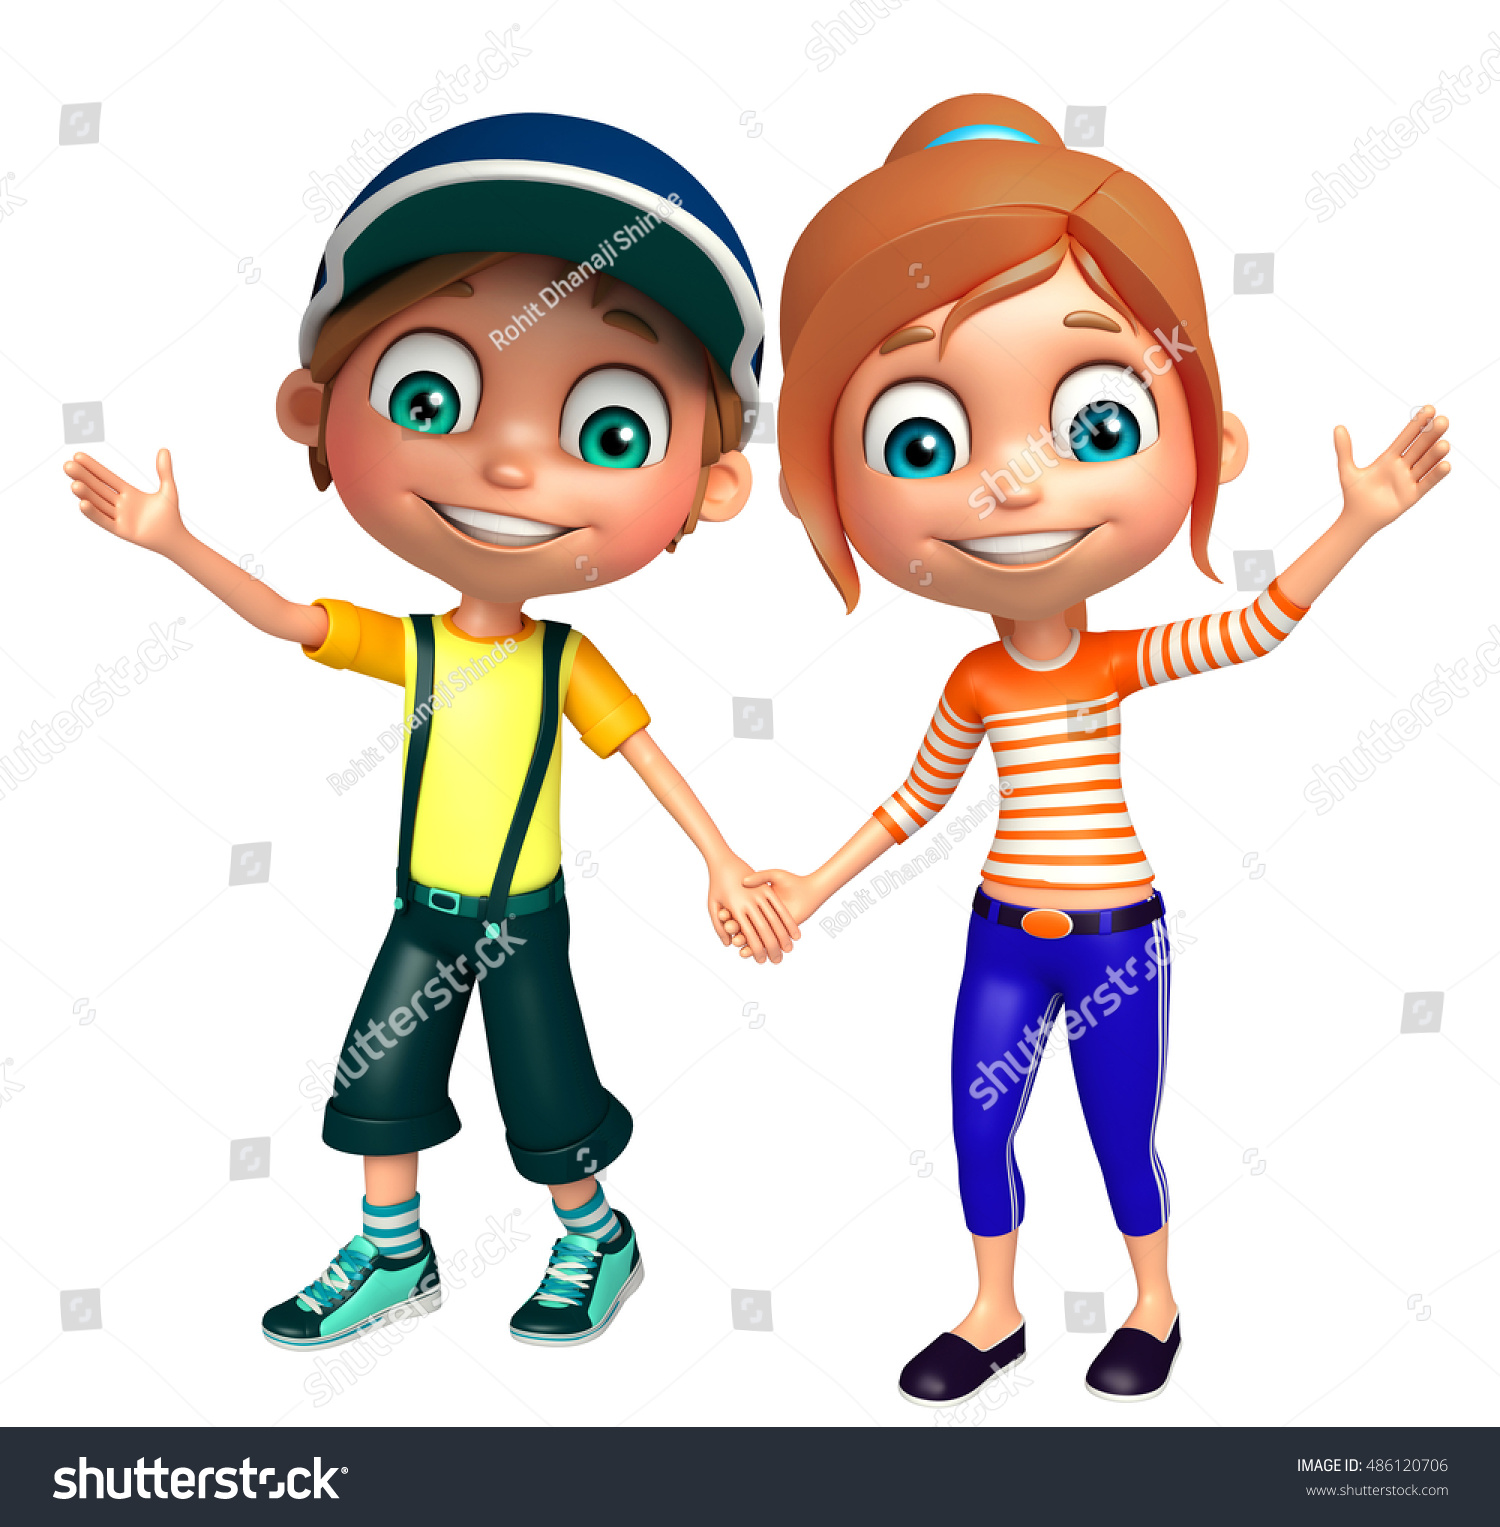 3D rendered illustration of Kid boy and girl with Funny pose